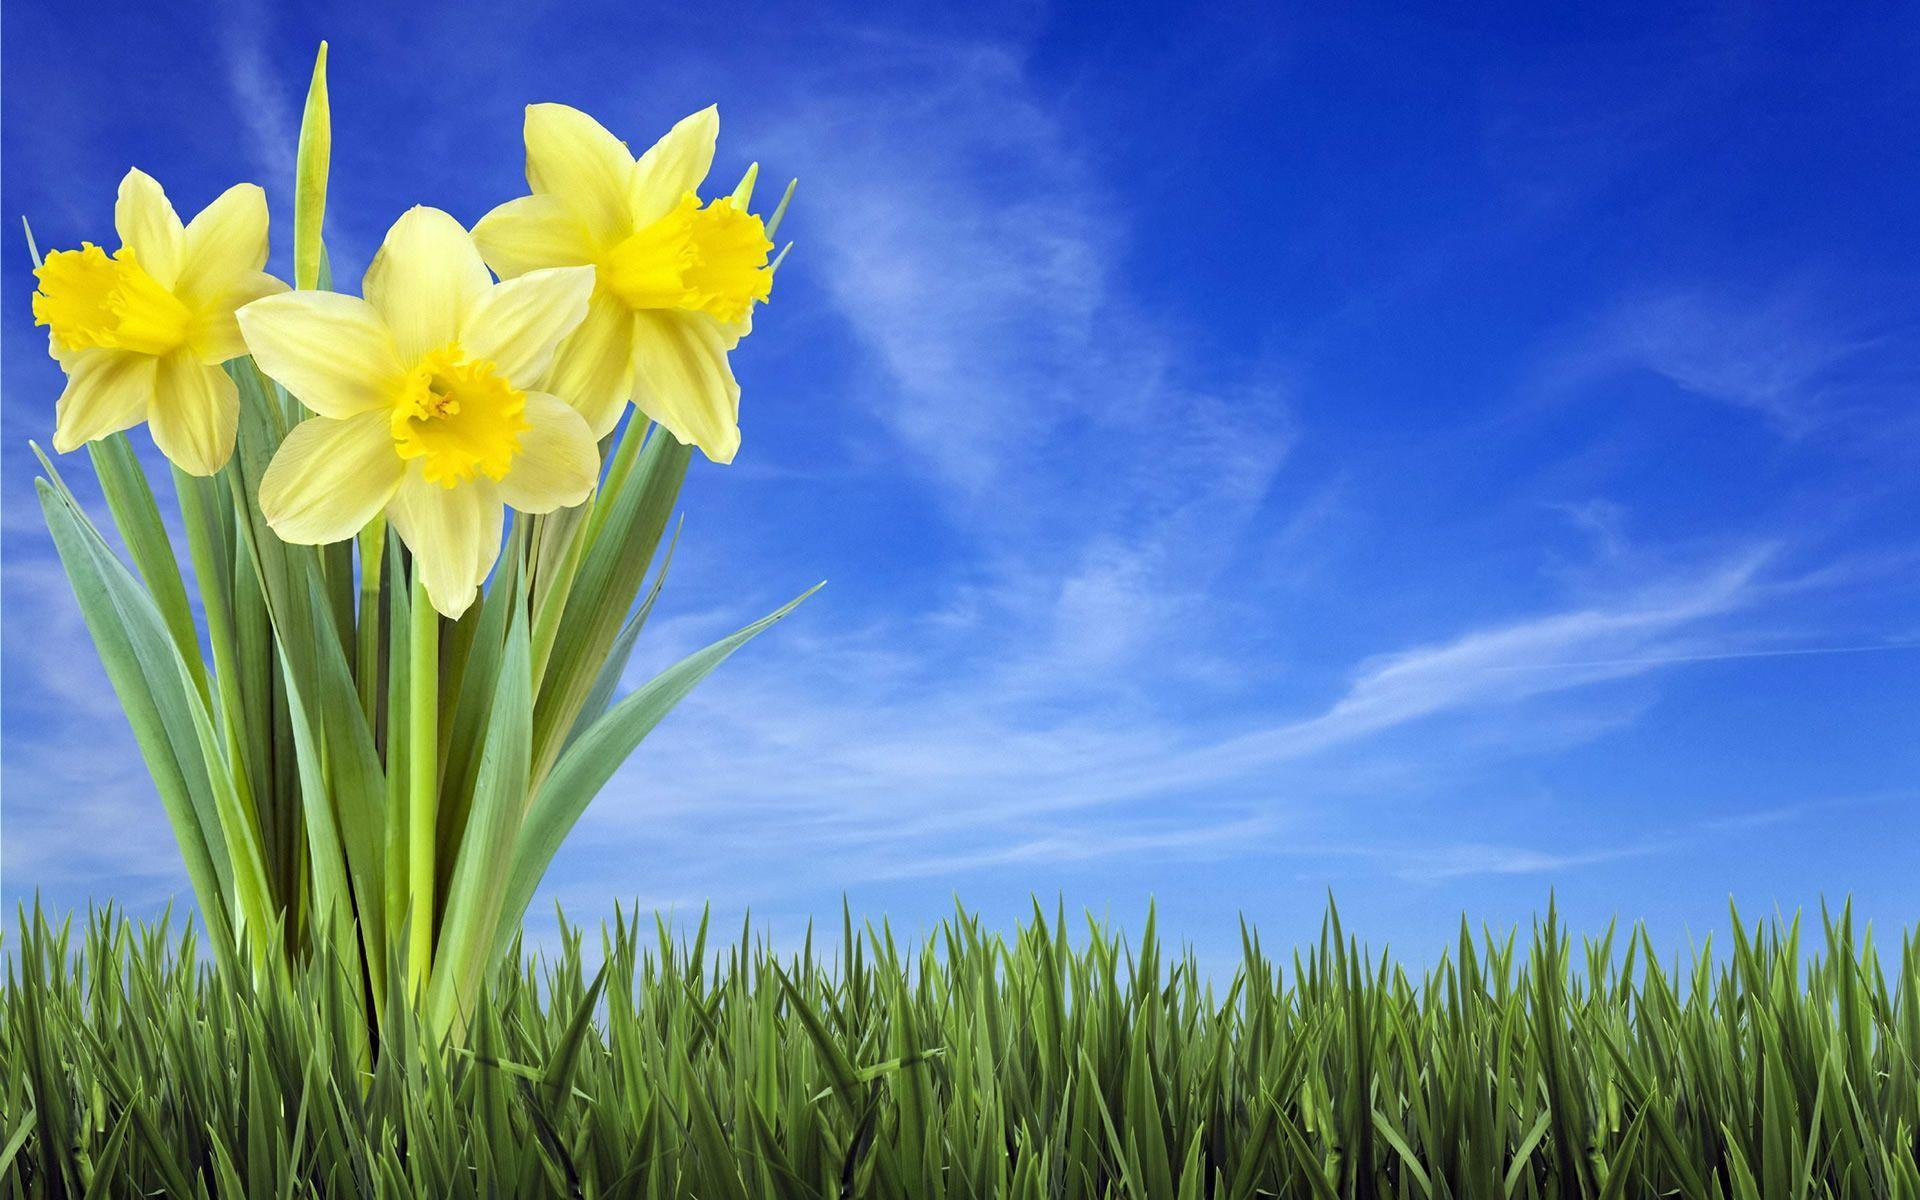 Spring Background Images - Wallpaper Cave - photo#3